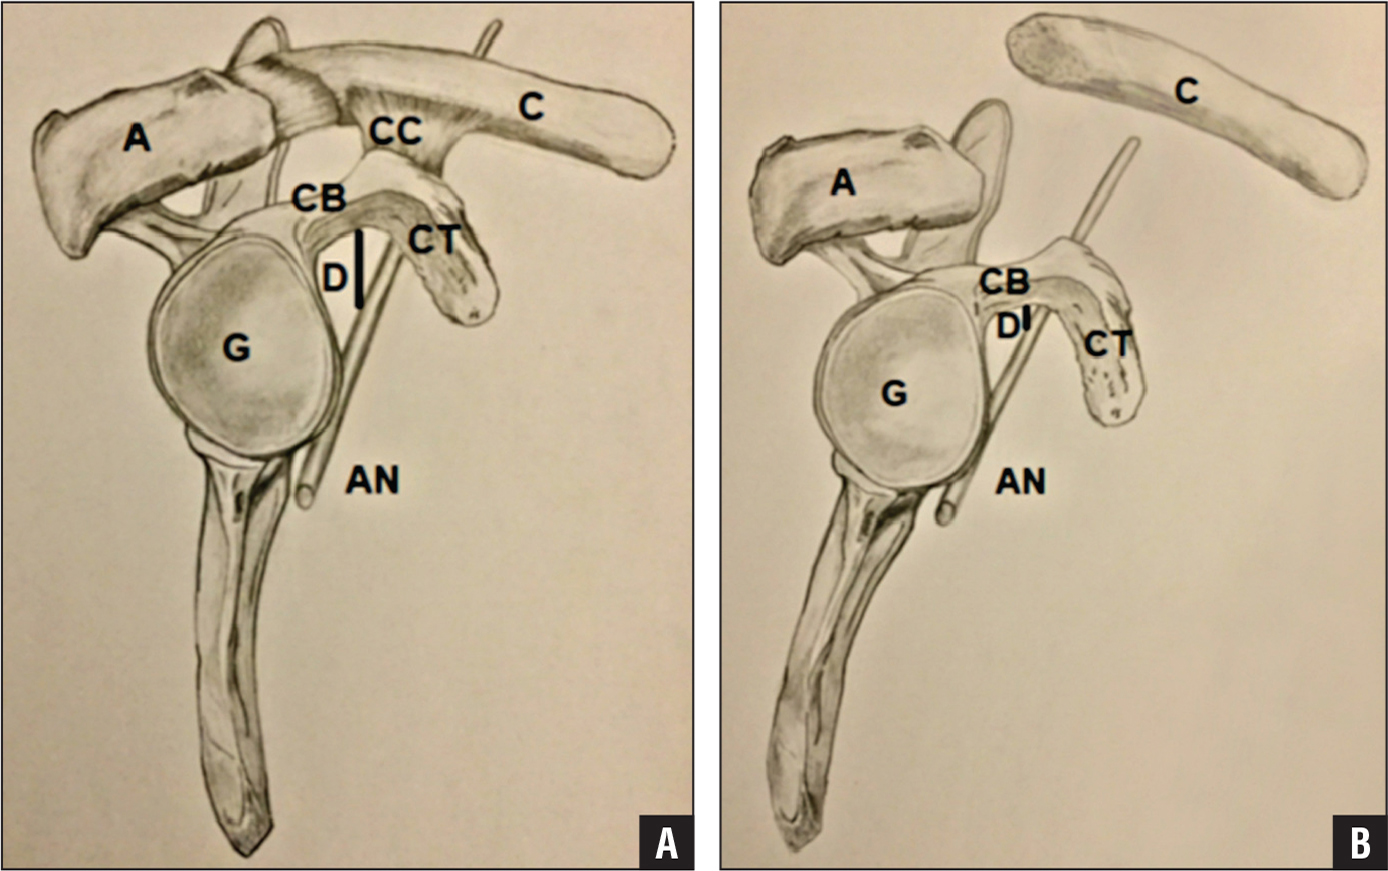 Sagittal view of normal anatomy (A). Sagittal view of anatomy after type V acromioclavicular joint separation with the scapula in downward rotation and anterior tilt (B). Abbreviations: A, acromion; AN, axillary nerve; C, clavicle; CB, coracoid base; CC, coracoclavicular ligaments; CT, coracoid tip; D, minimal distance between coracoid base and axillary nerve; G, glenoid.